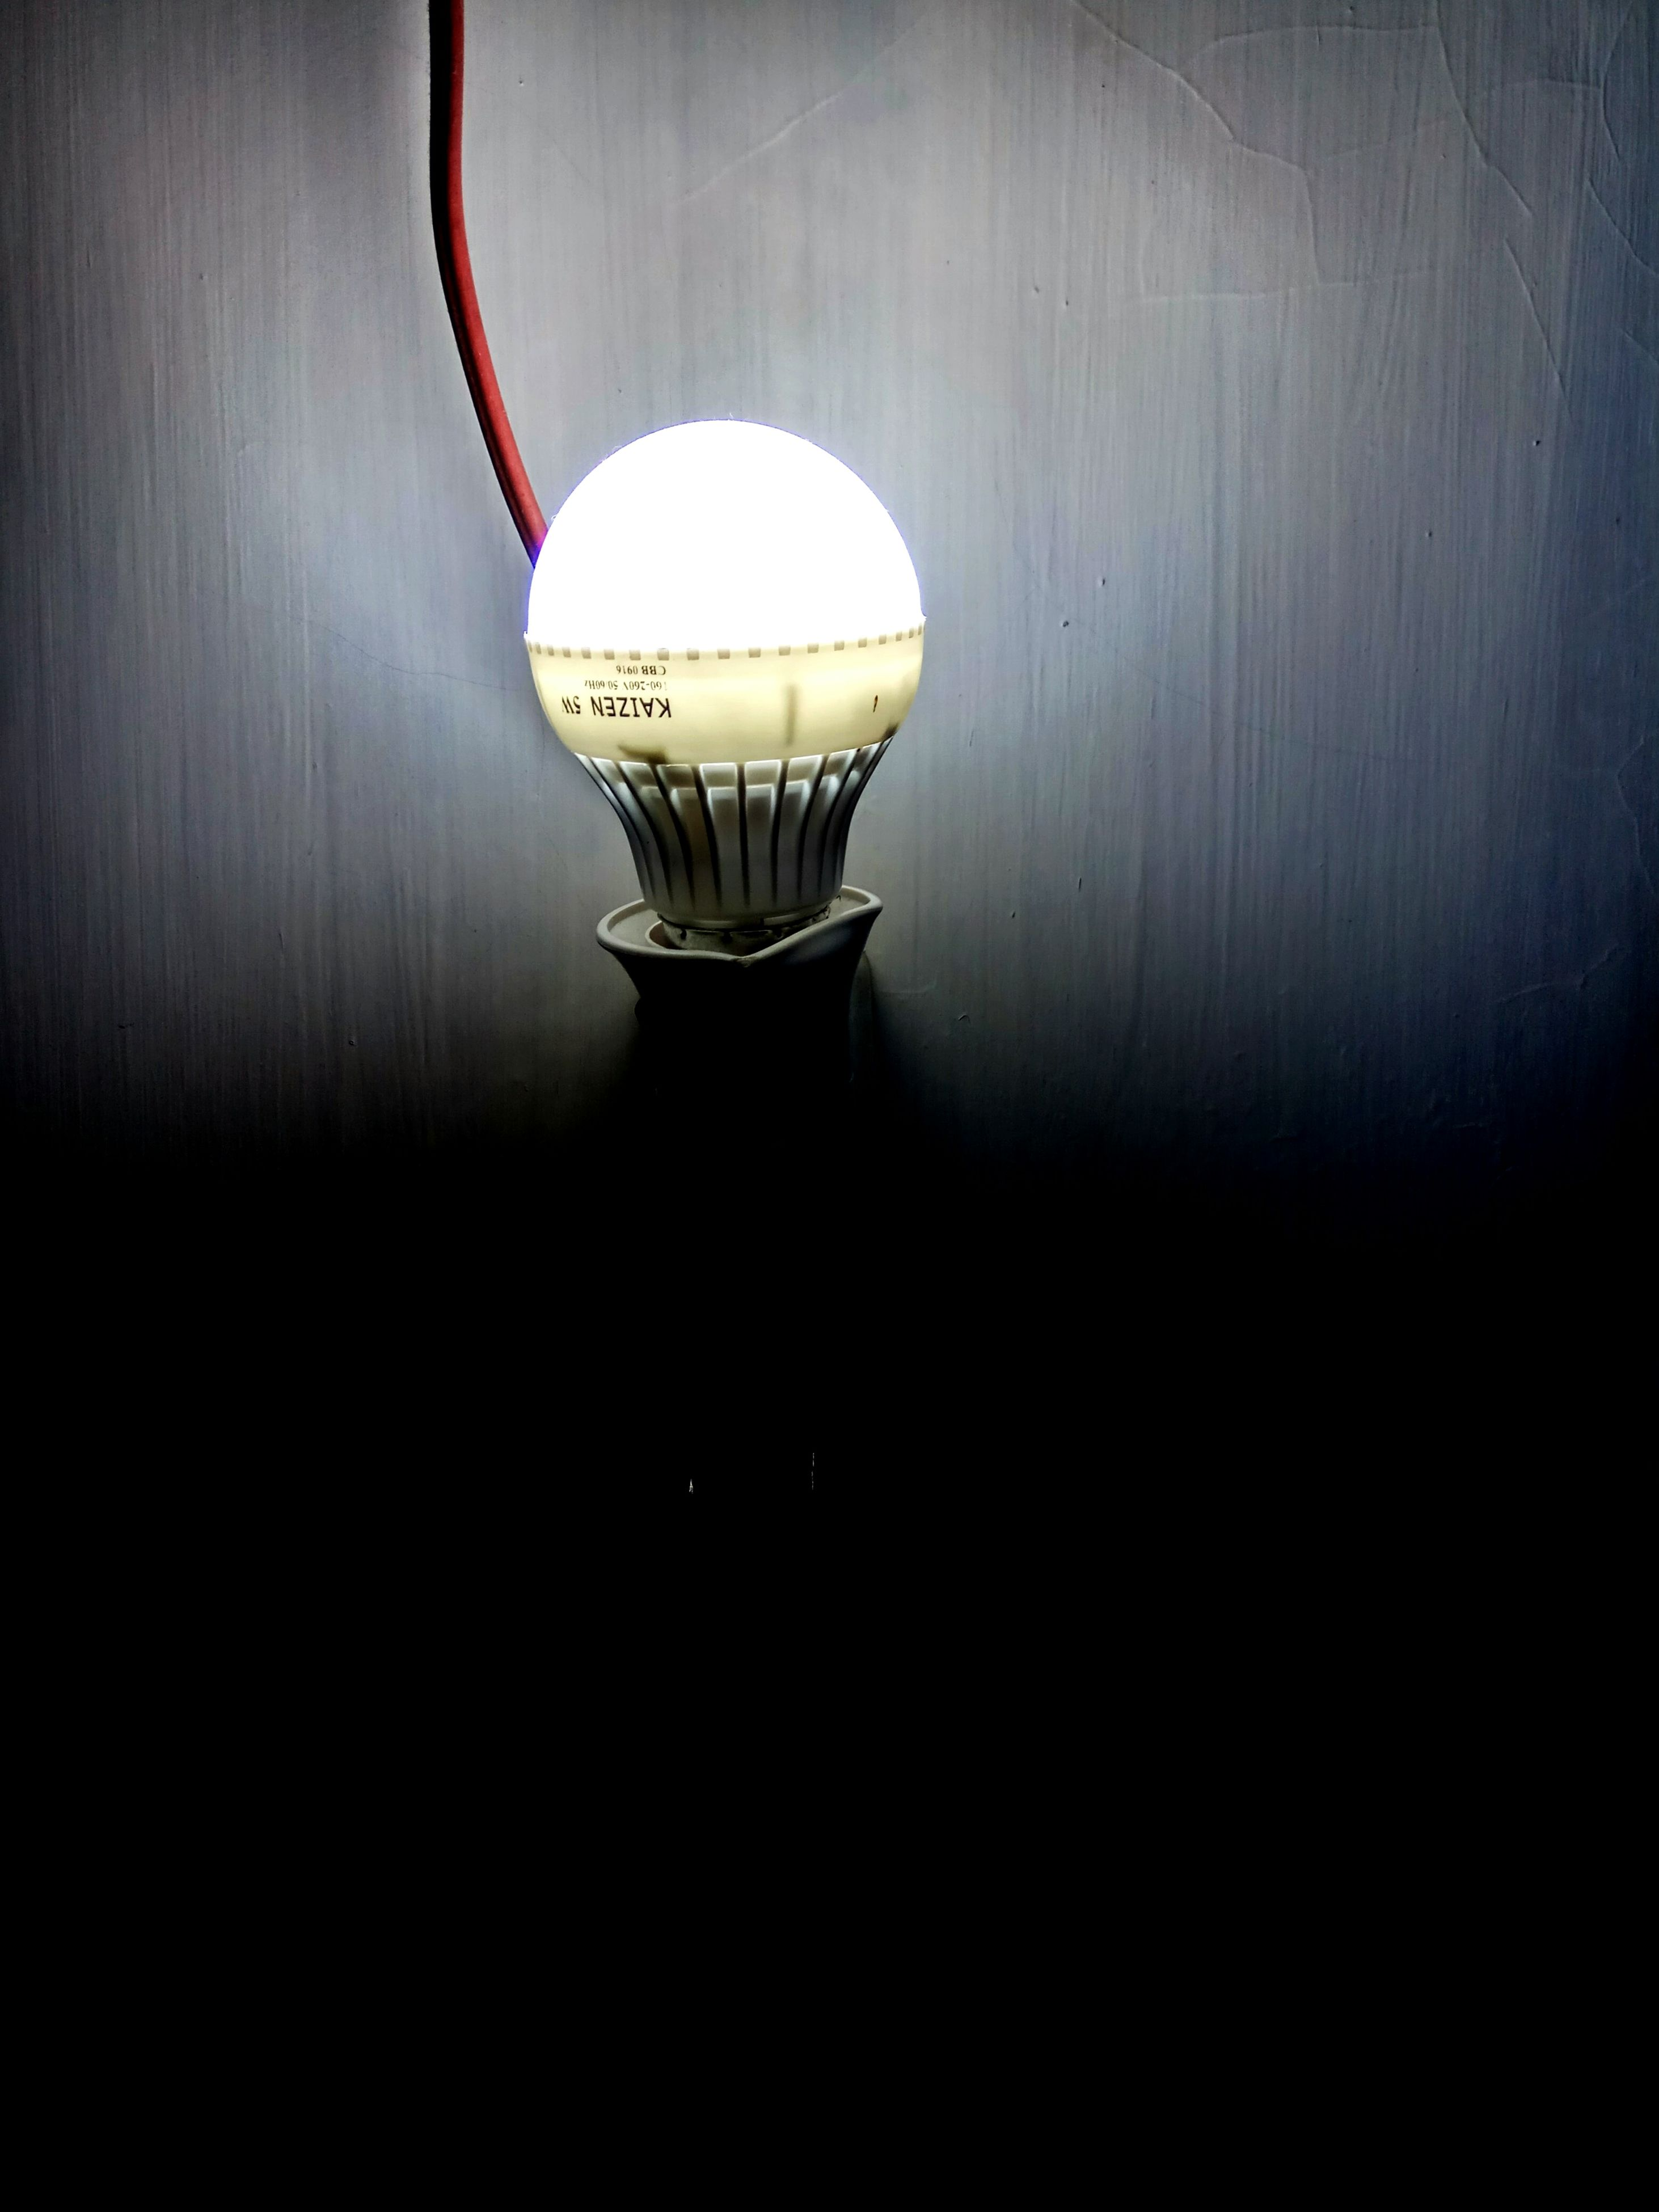 lighting equipment, electricity, illuminated, light bulb, no people, indoors, electric lamp, electric light, close-up, technology, table, filament, cable